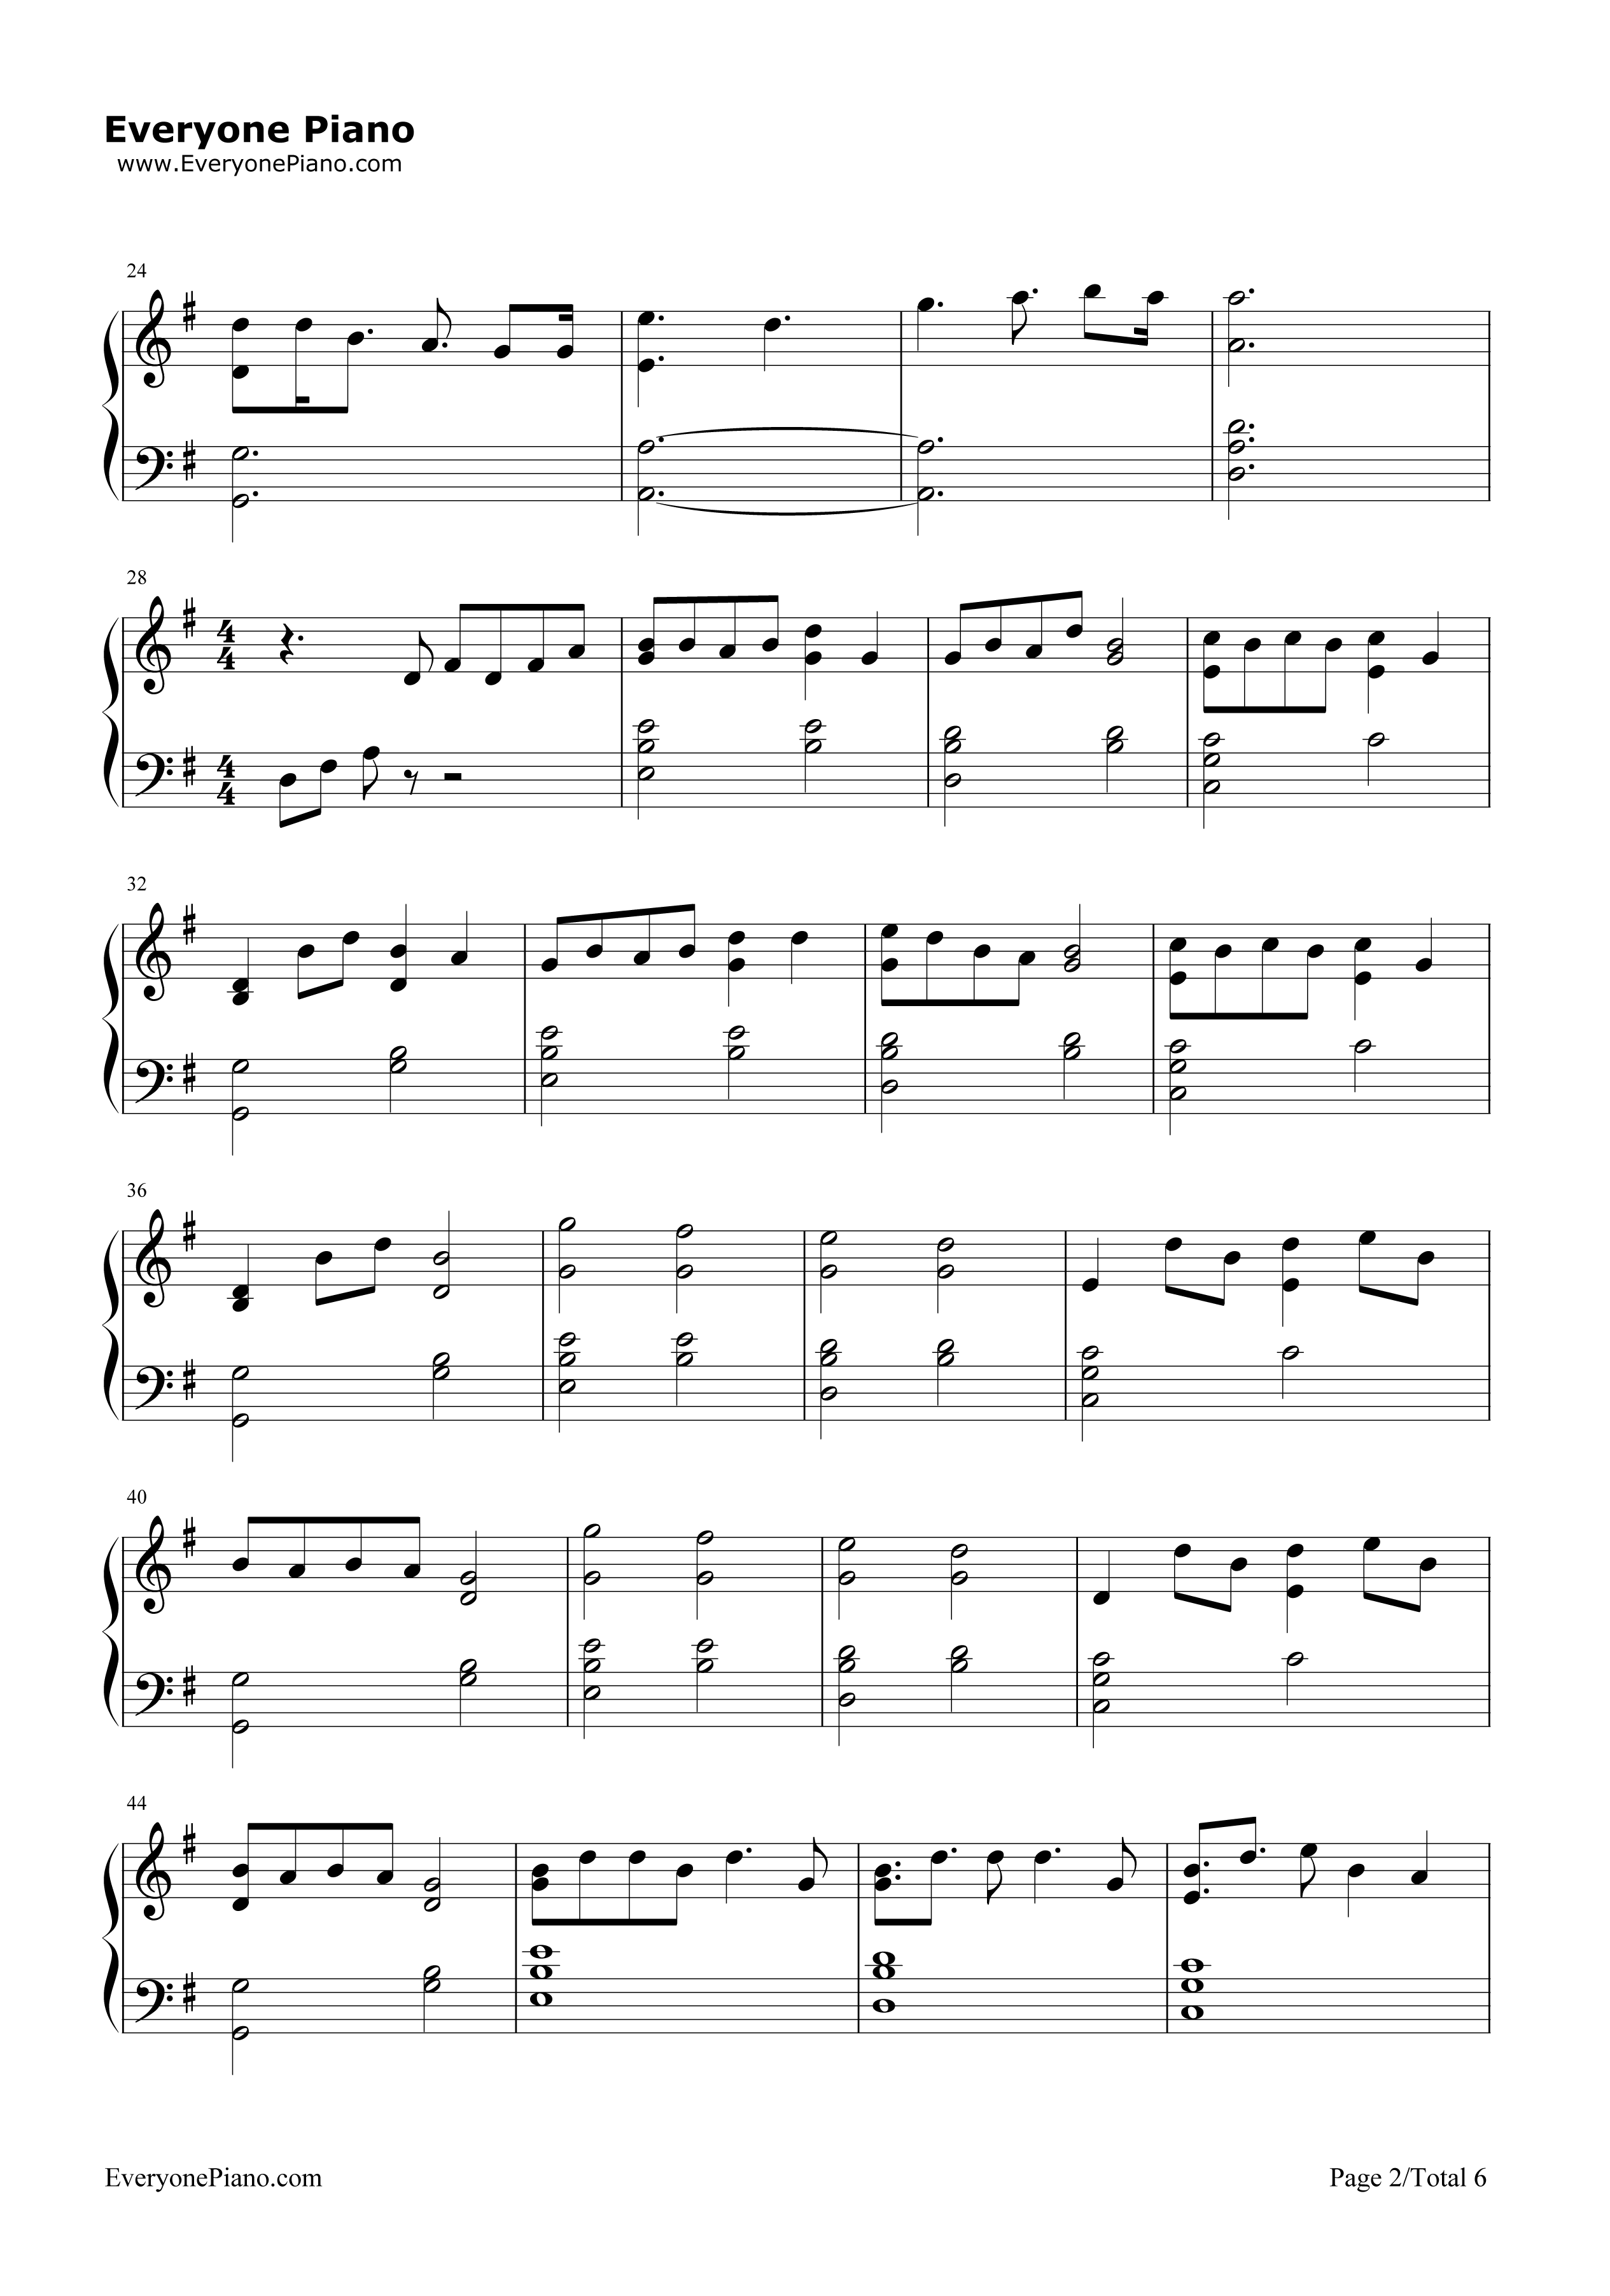 Lost boy ruth b free piano sheet music piano chords lost boy ruth b stave preview 2 hexwebz Image collections